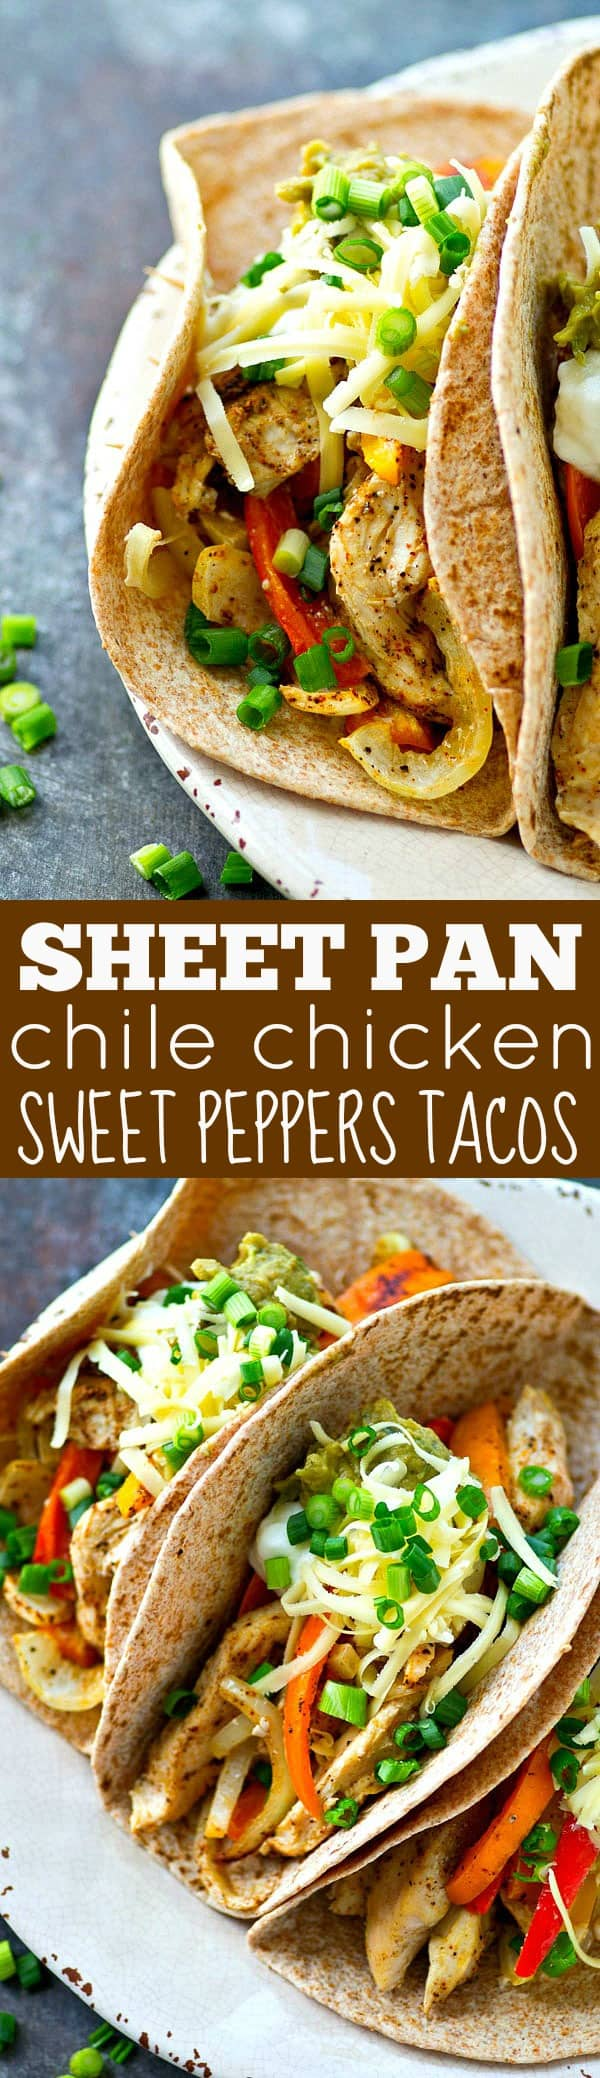 'Kickin chile-rubbed chicken and peppers bake up on one sheet pan to make these ULTIMATELY easy and flavorful chicken sweet peppers tacos! Load 'em up with all your favorite taco toppings.